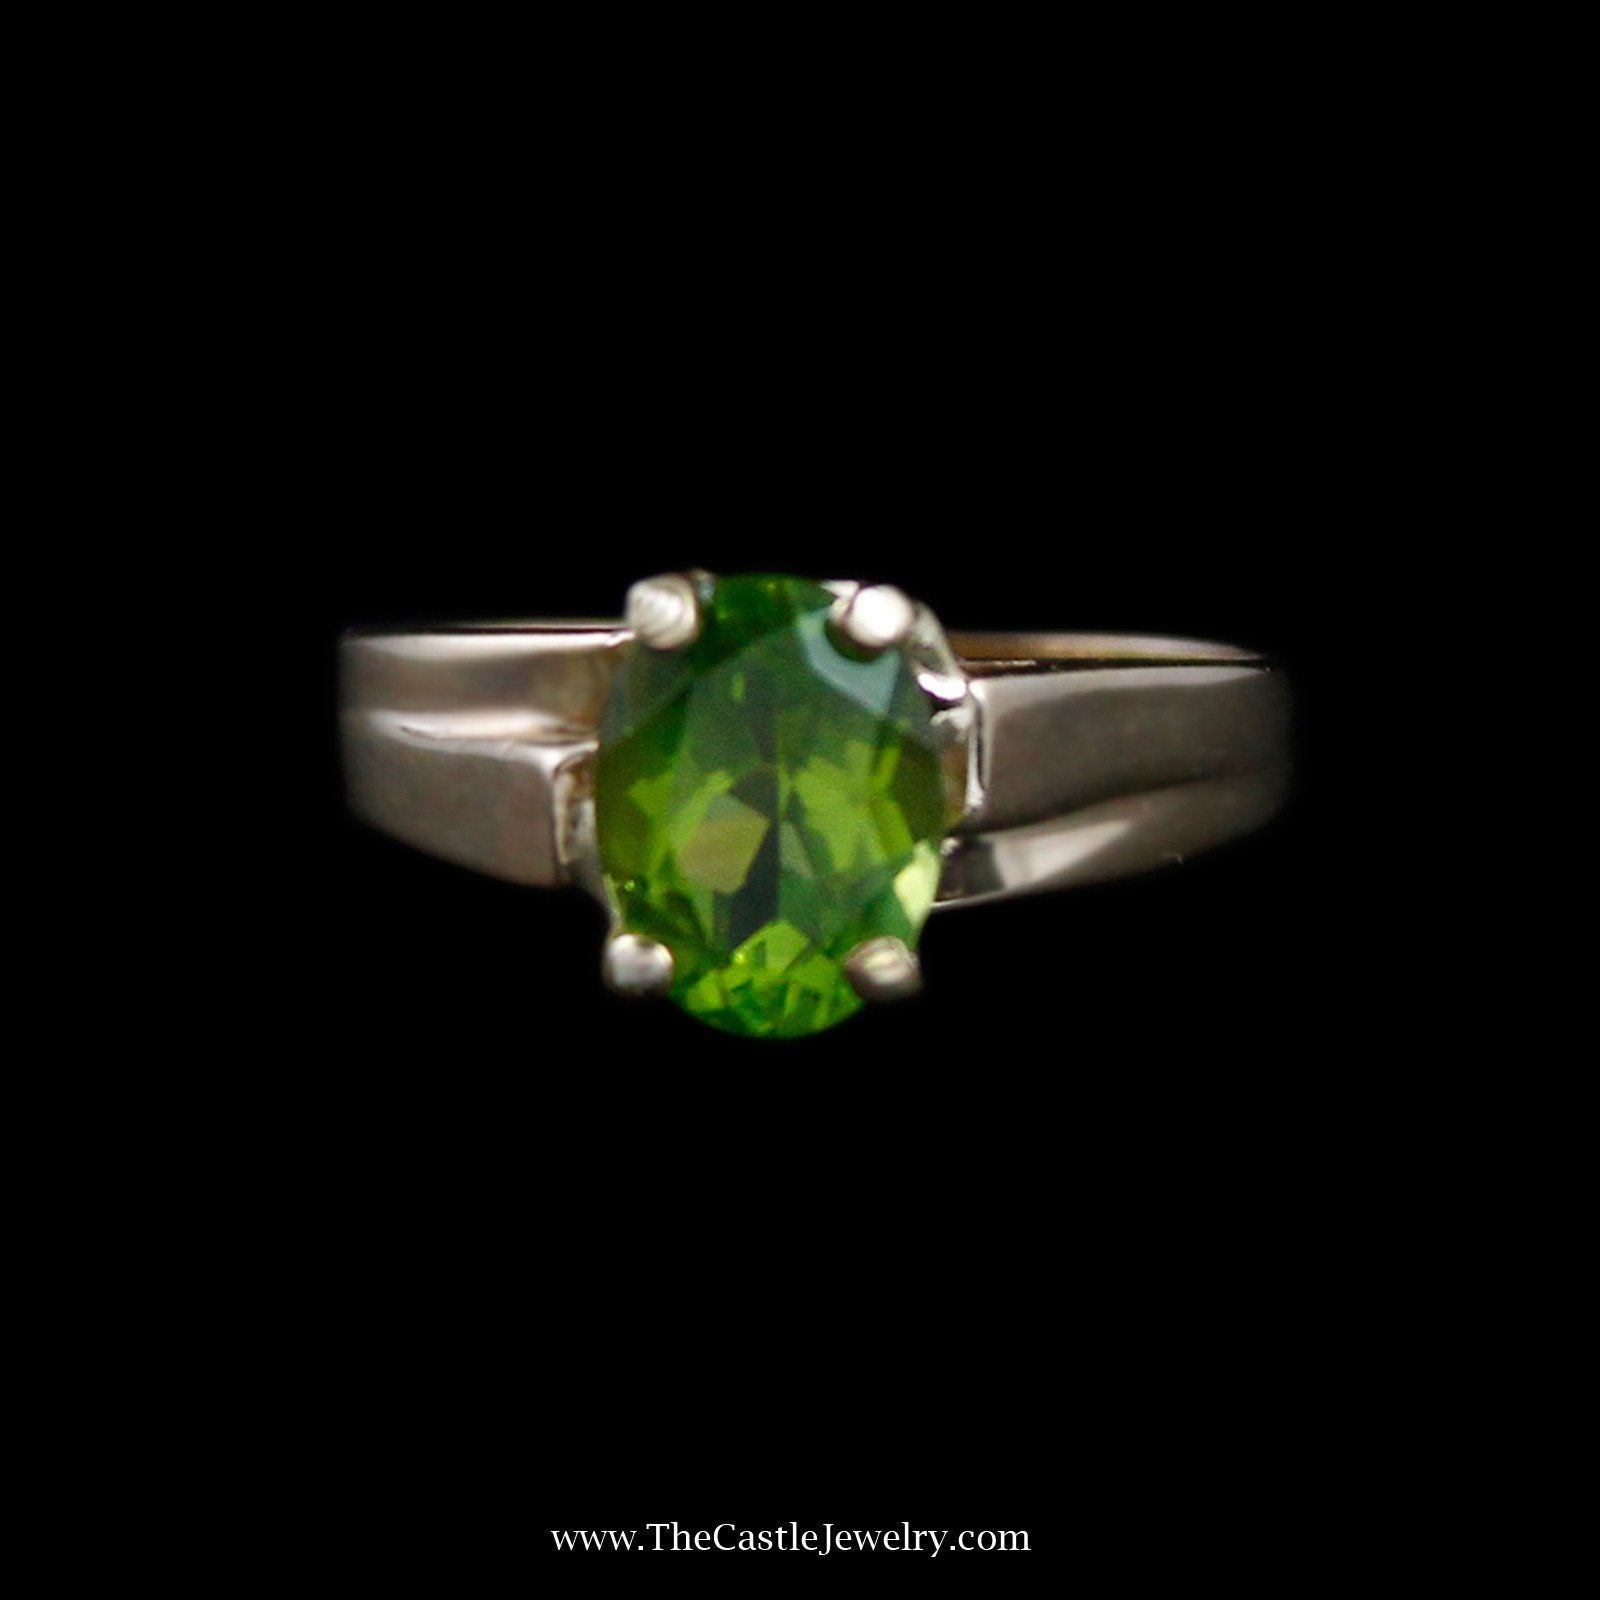 Charming Oval Peridot Solitaire Gemstone Ring in 14k Yellow Gold